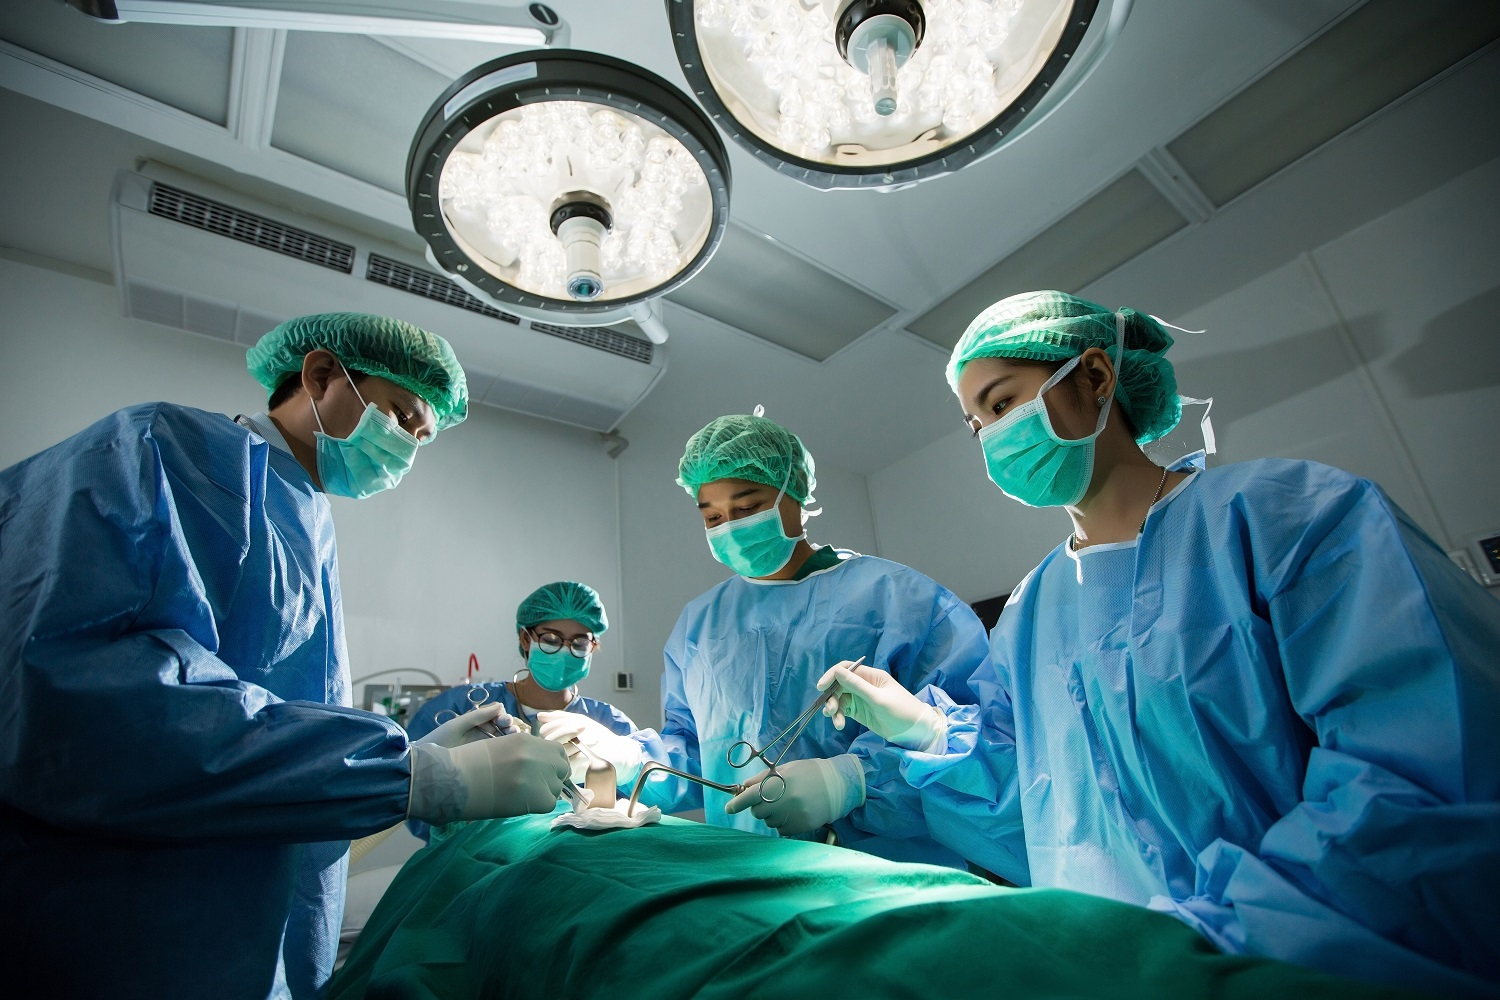 People wearing masks in operating room